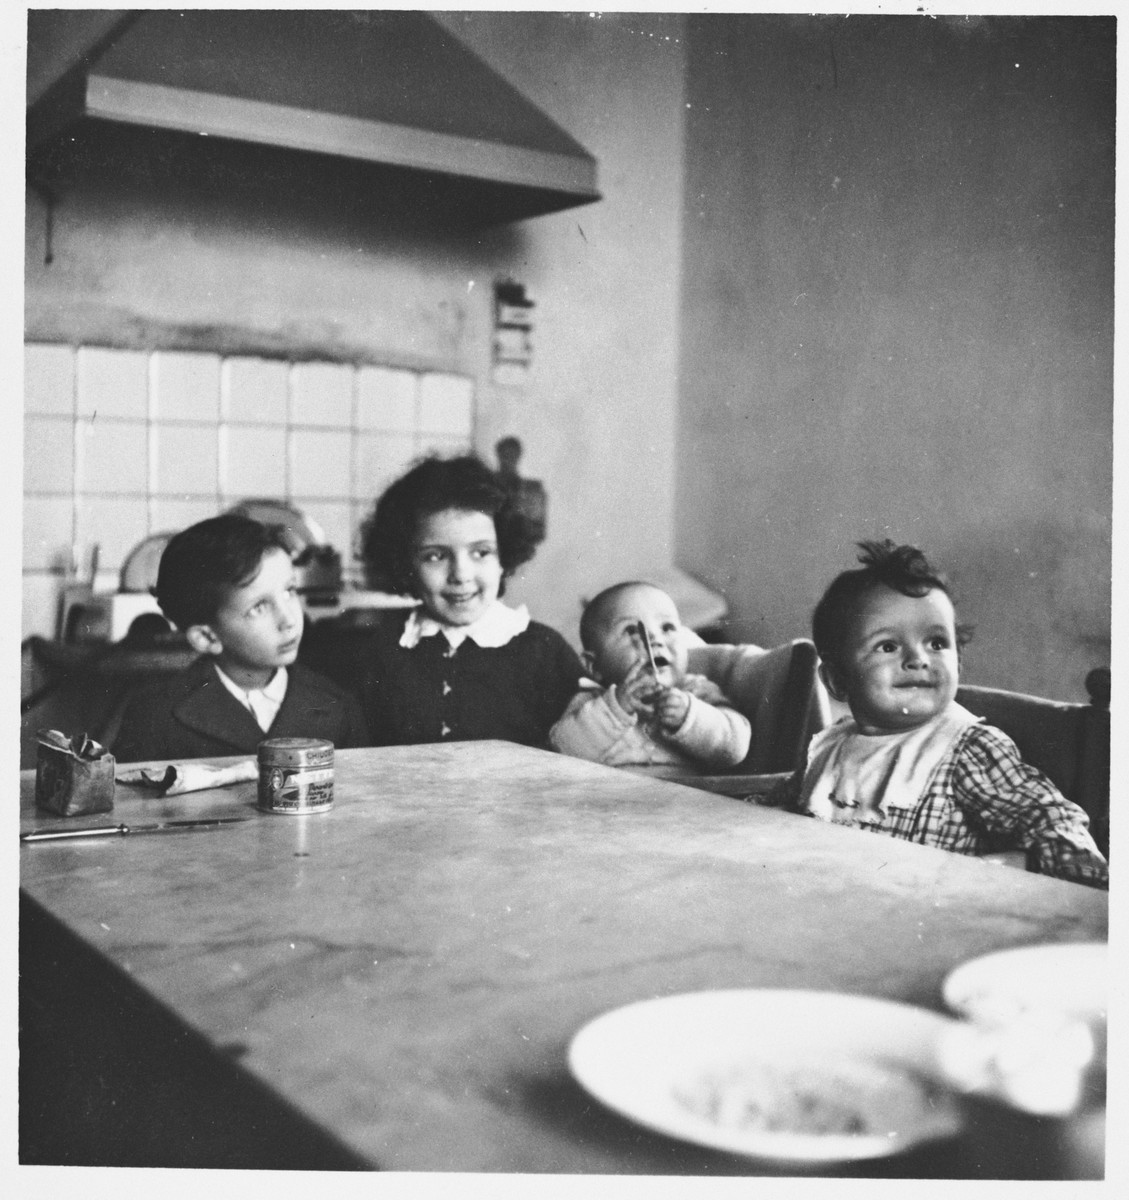 The Cassuto children sit around a kitchen table.  Pictured are Susanna, David, their cousin Umberto DiGiaccino, and Daniel.